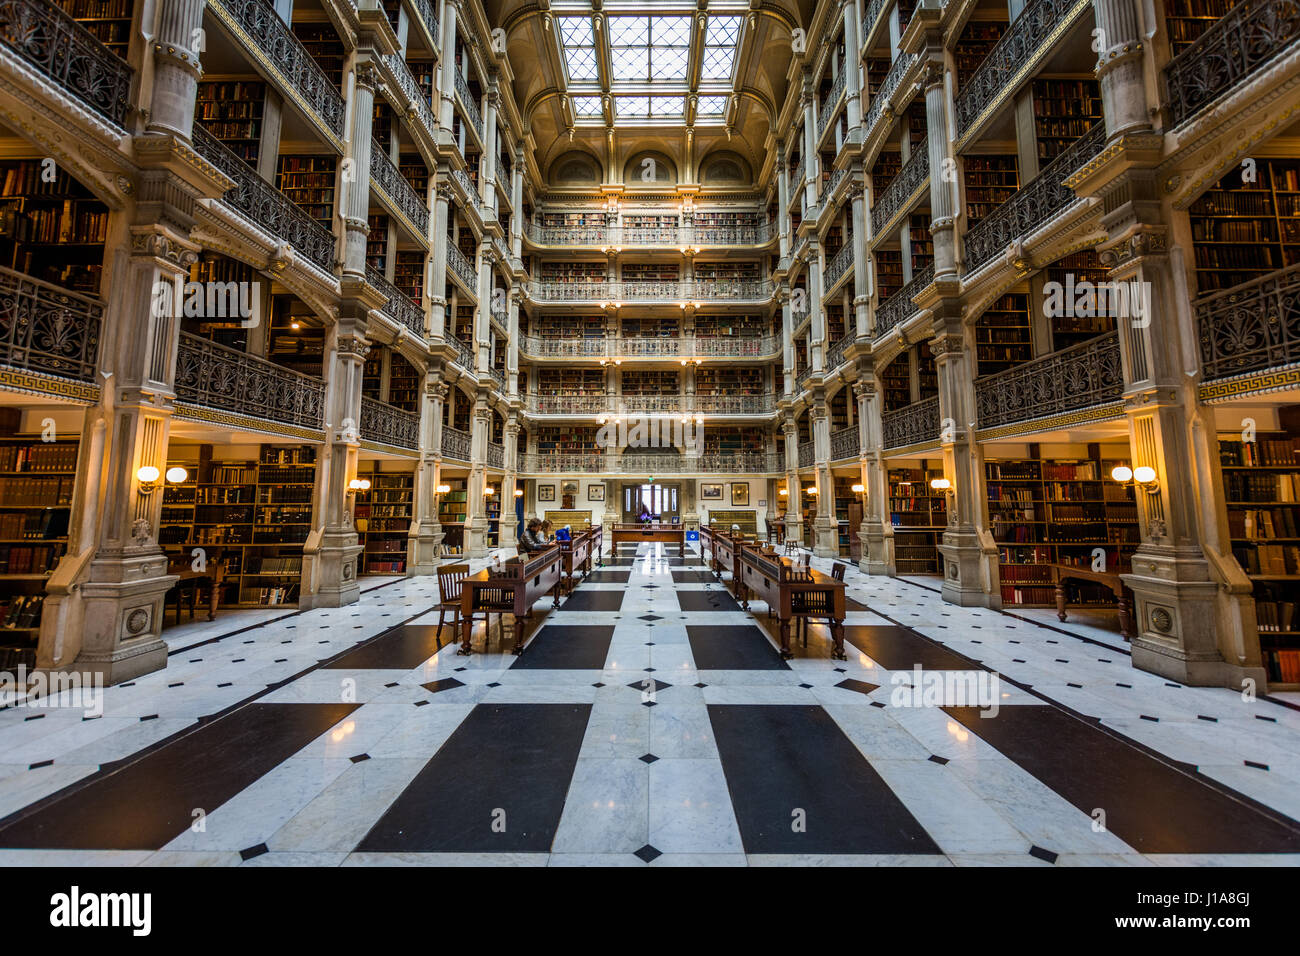 Peabody Building in Baltimore, Maryland - Stock Image